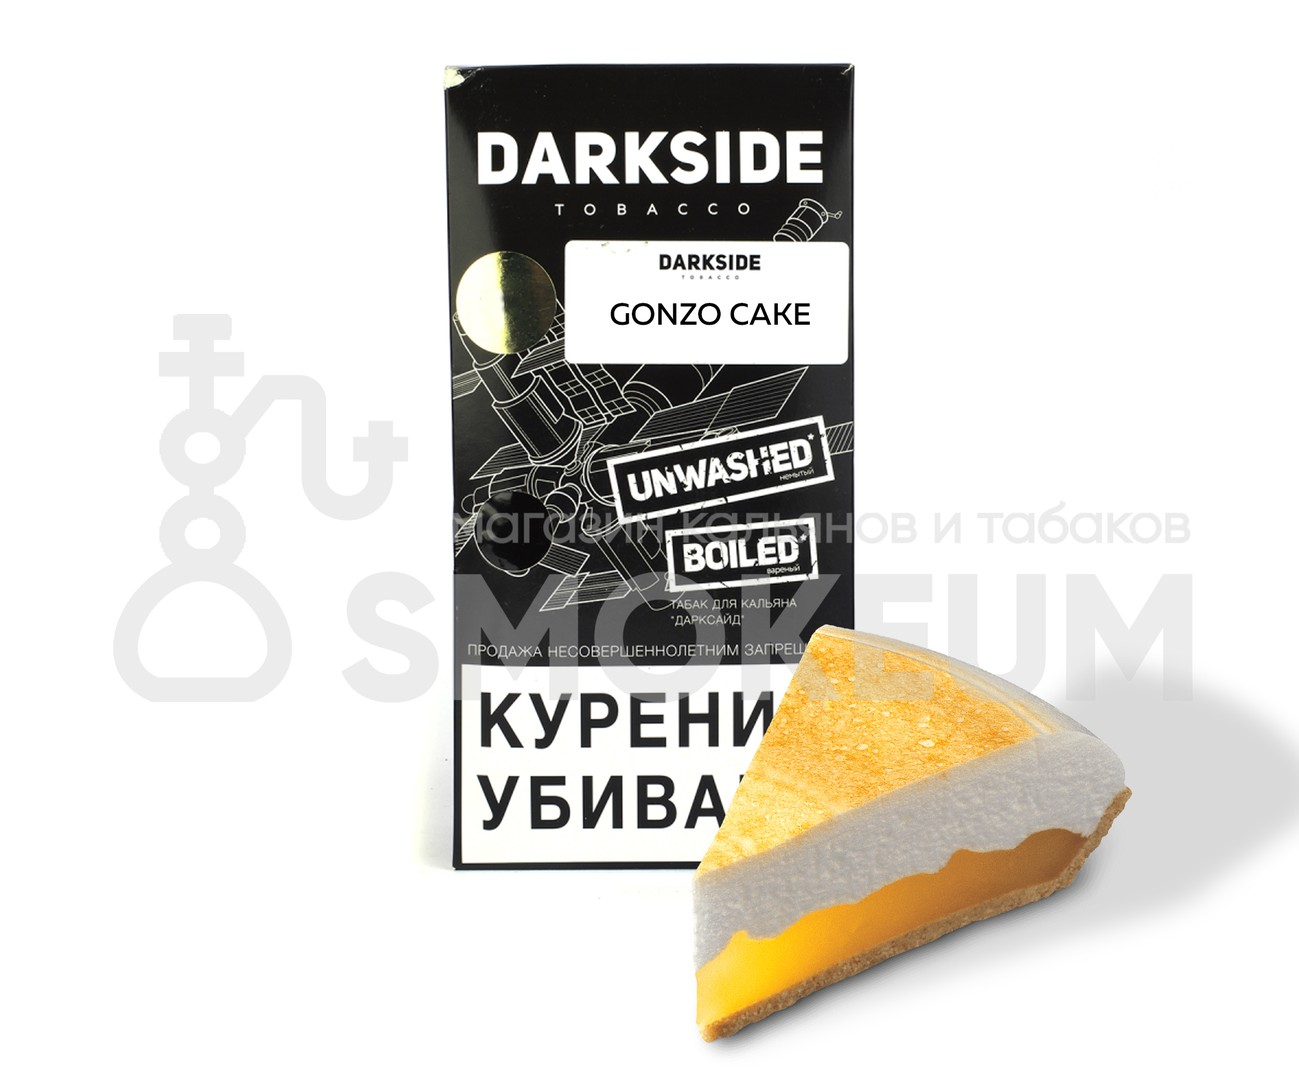 Табак Darkside (Medium) - Gonzo cake (Чизкейк) 250 гр